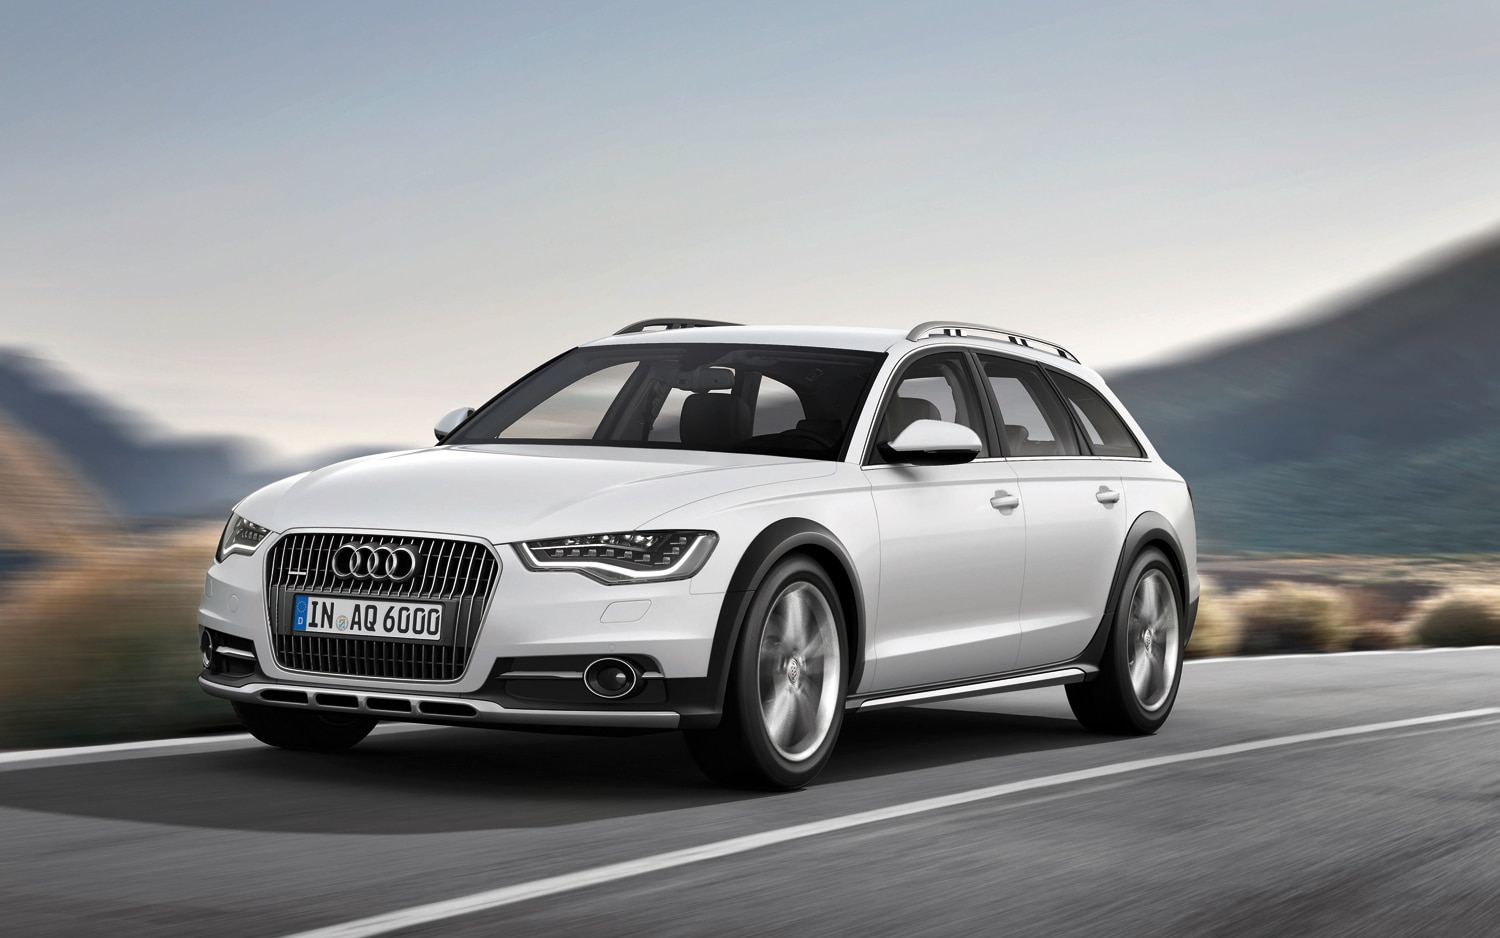 2012 Audi A6 Allroad Front Three Quarter In Motion1